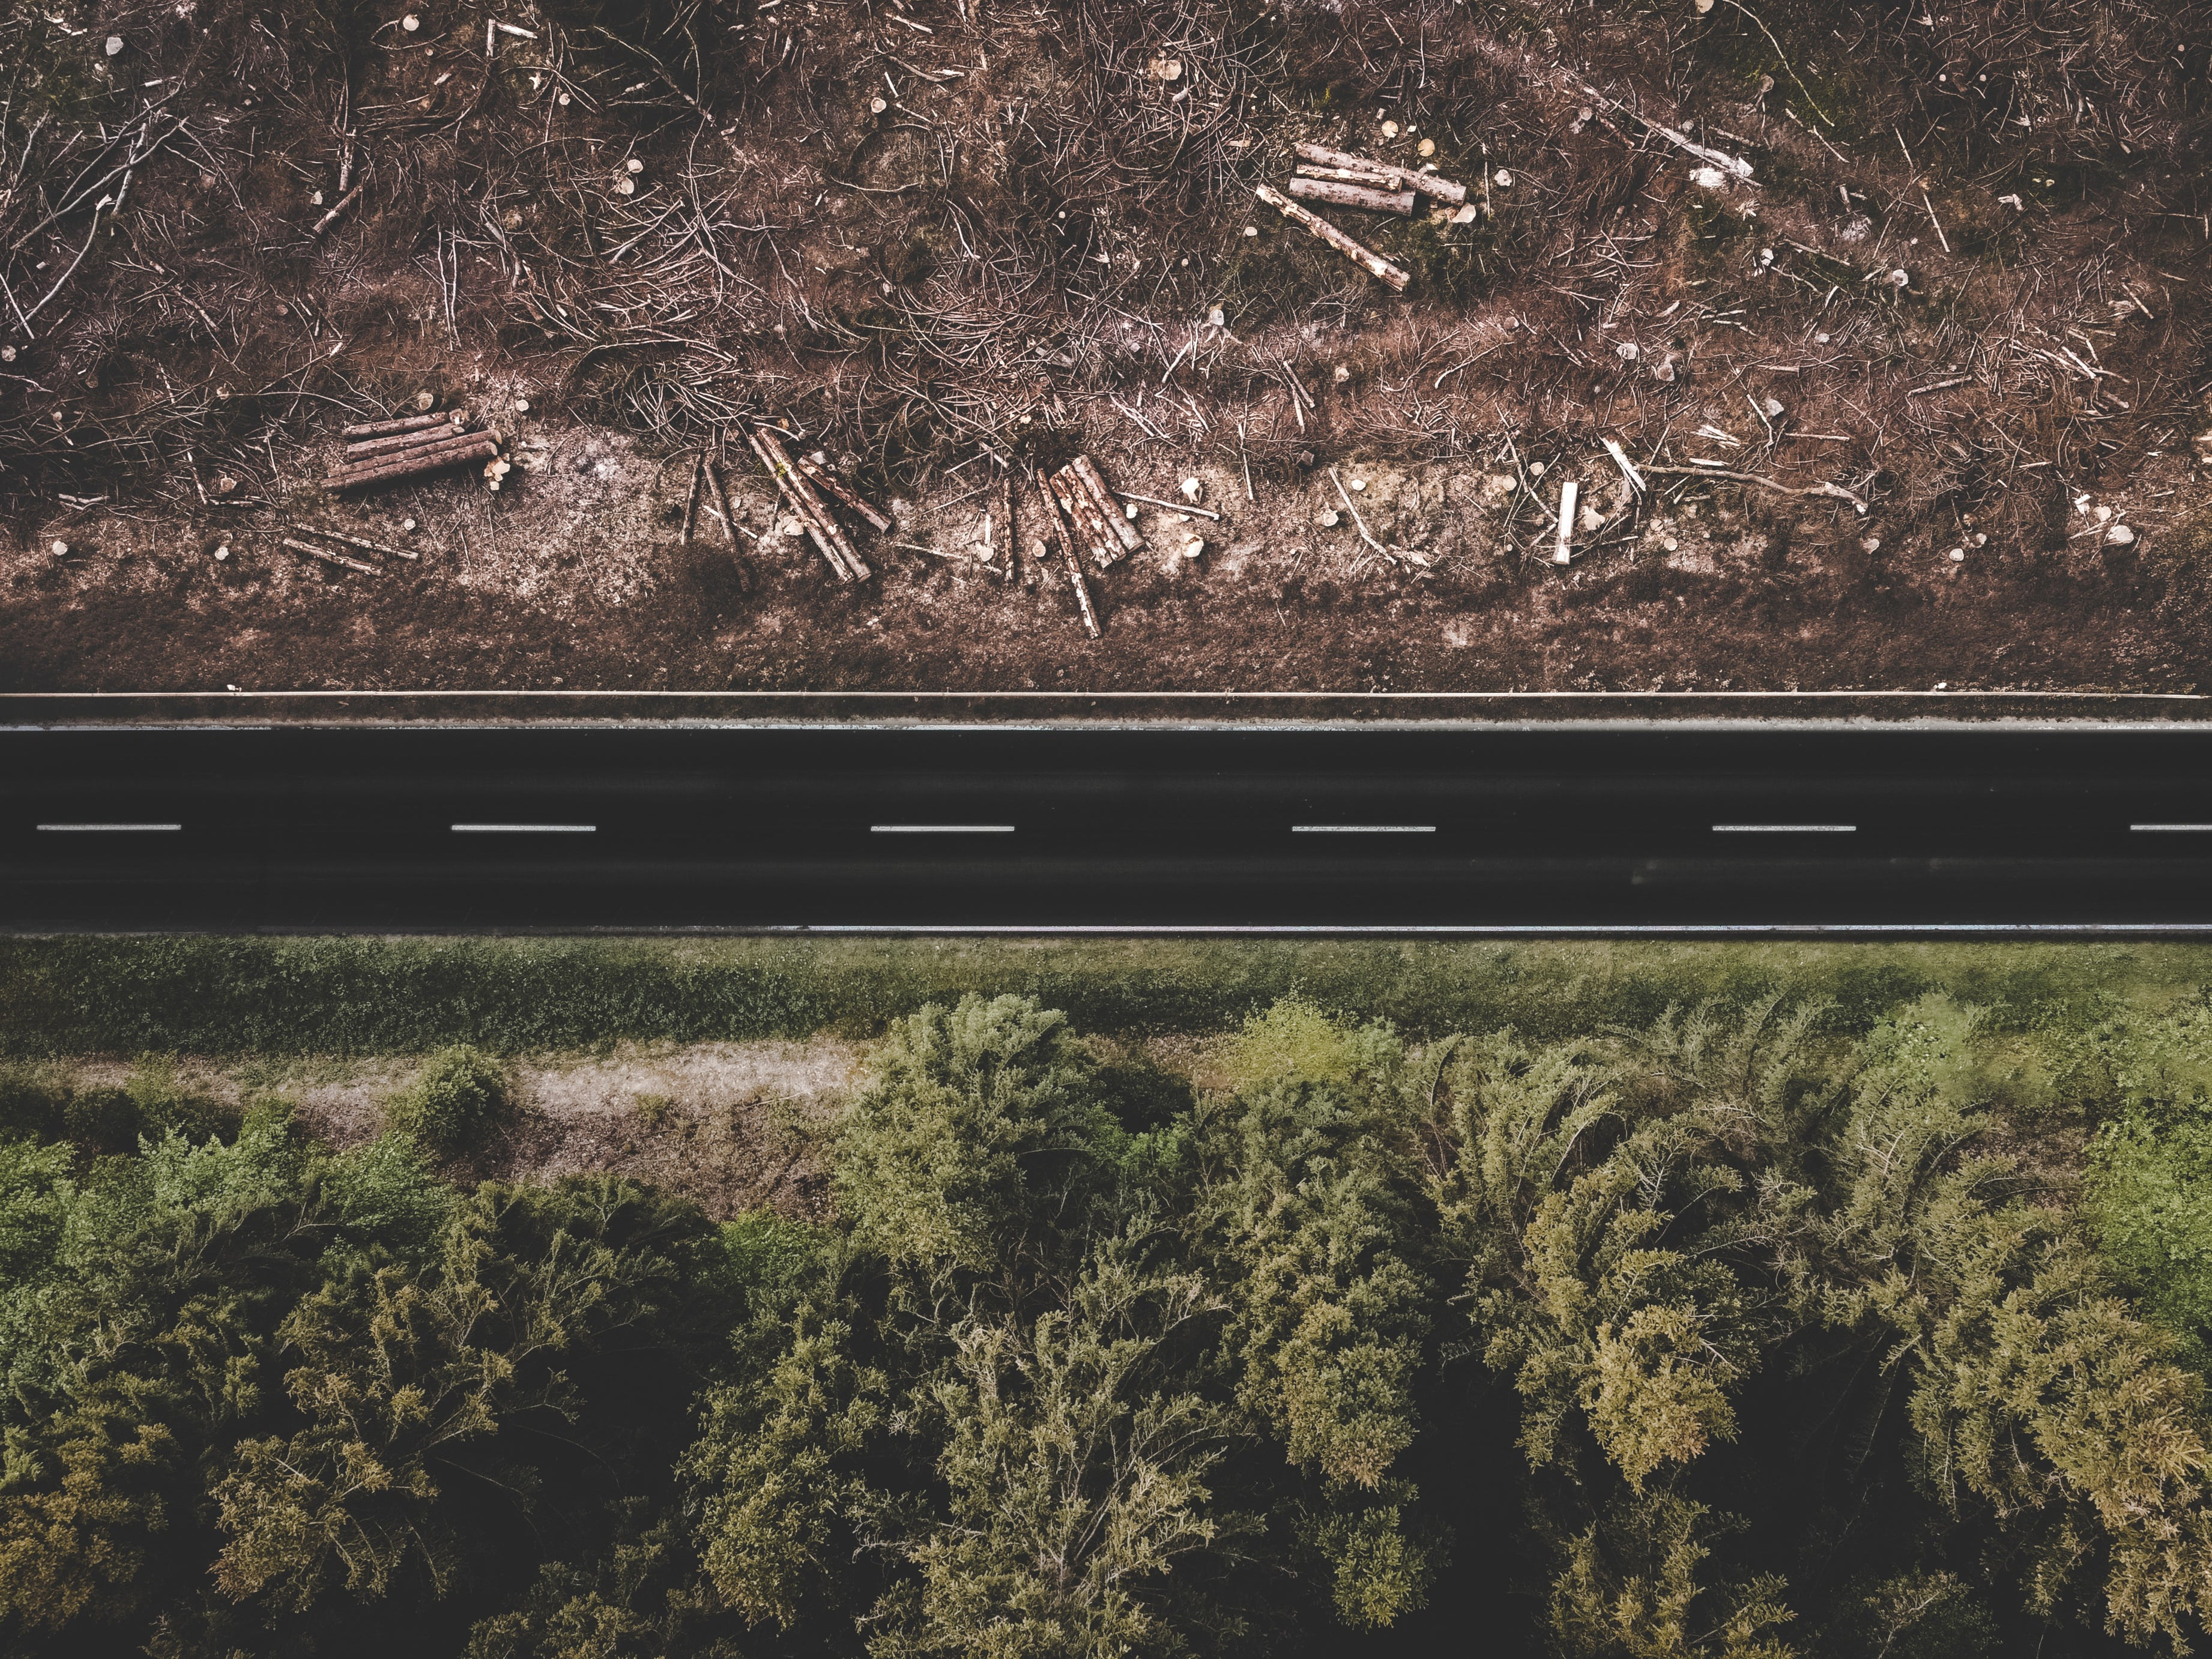 An area of deforestation and a healthy forest separated by a road.